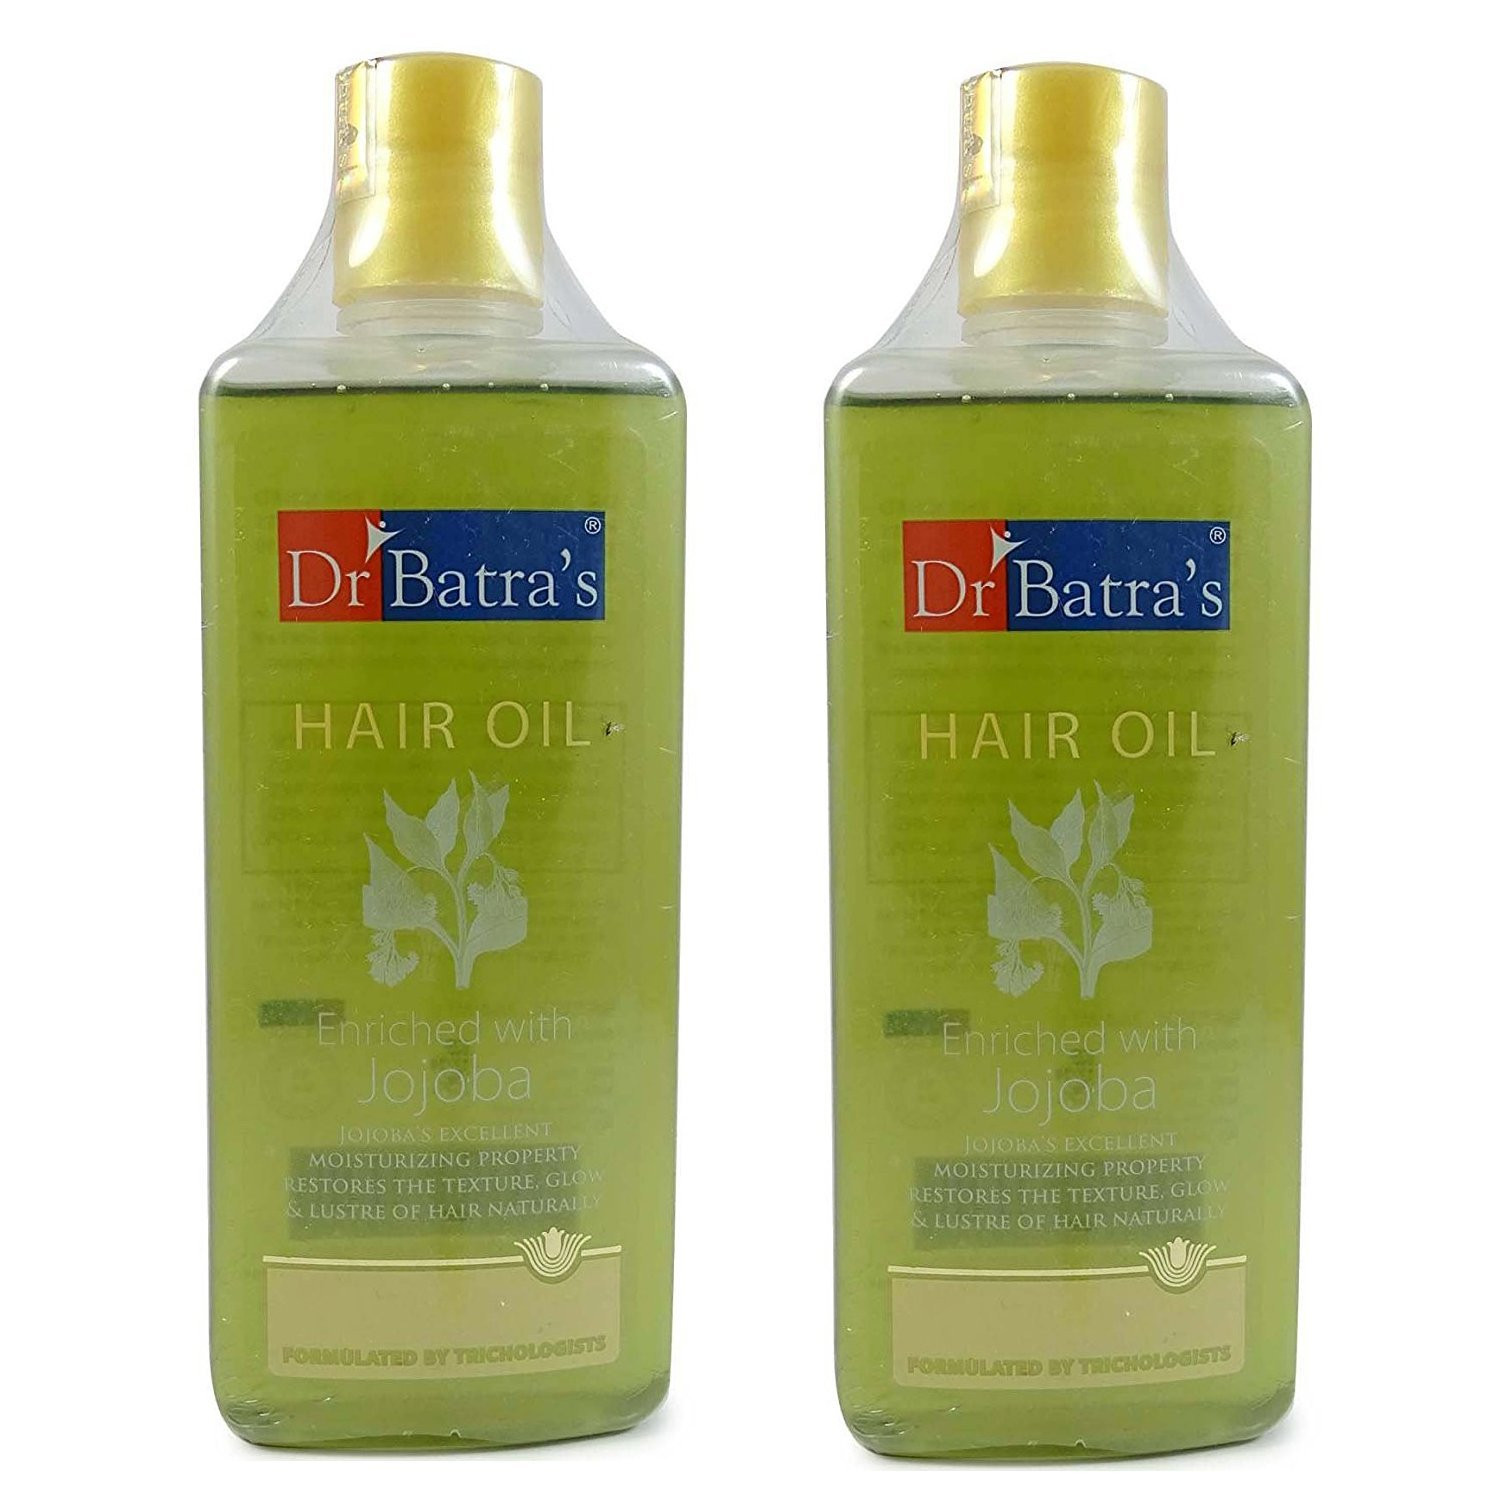 Dr Batras Enriched with Jojoba Hair Oil, 200ml Set Of 2